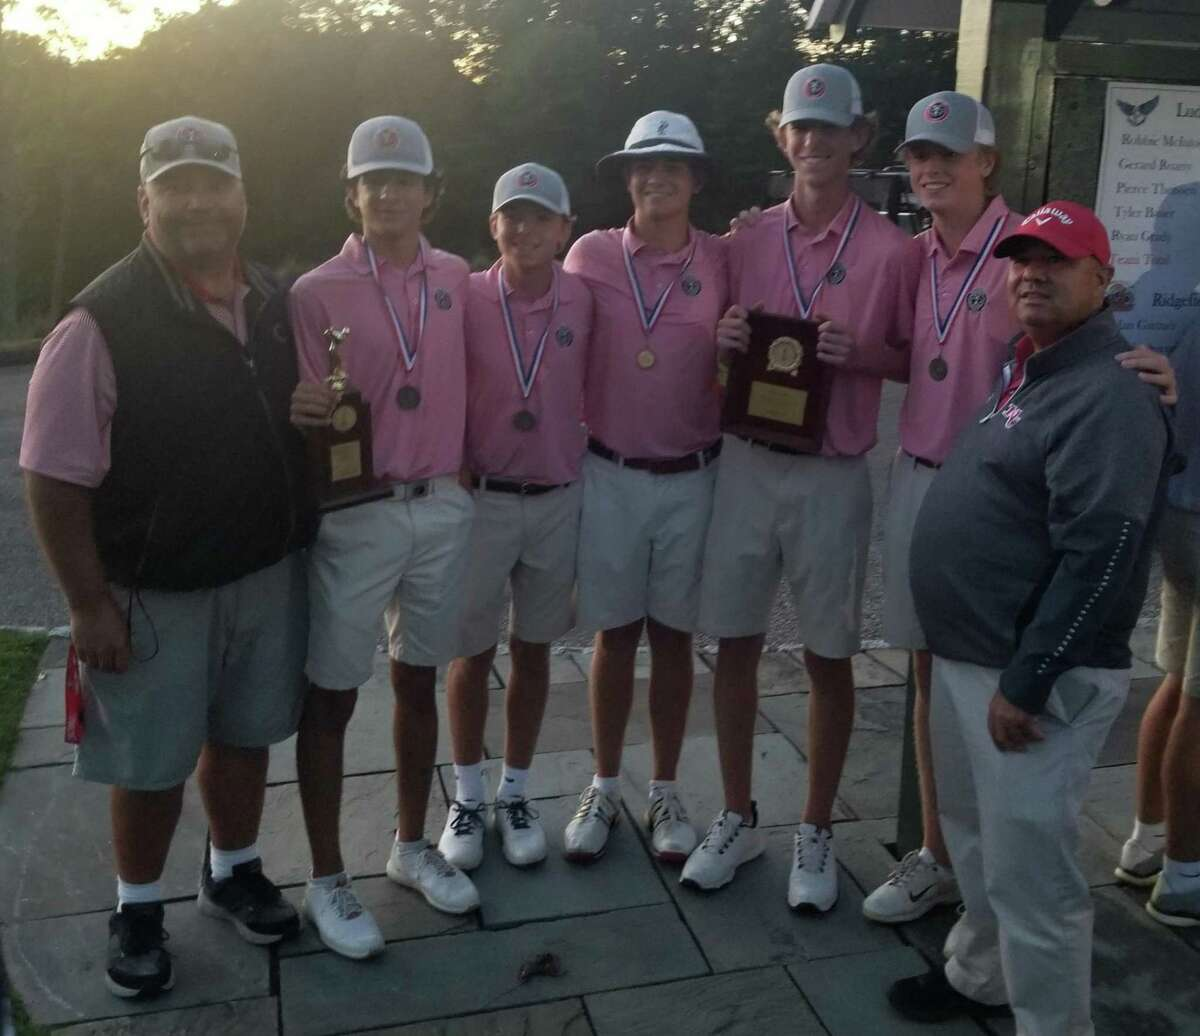 New Canaan won its second consecutive FCIAC boys golf championship on Oct. 14, 2021 at Silver Spring Country Club in Ridgefield.